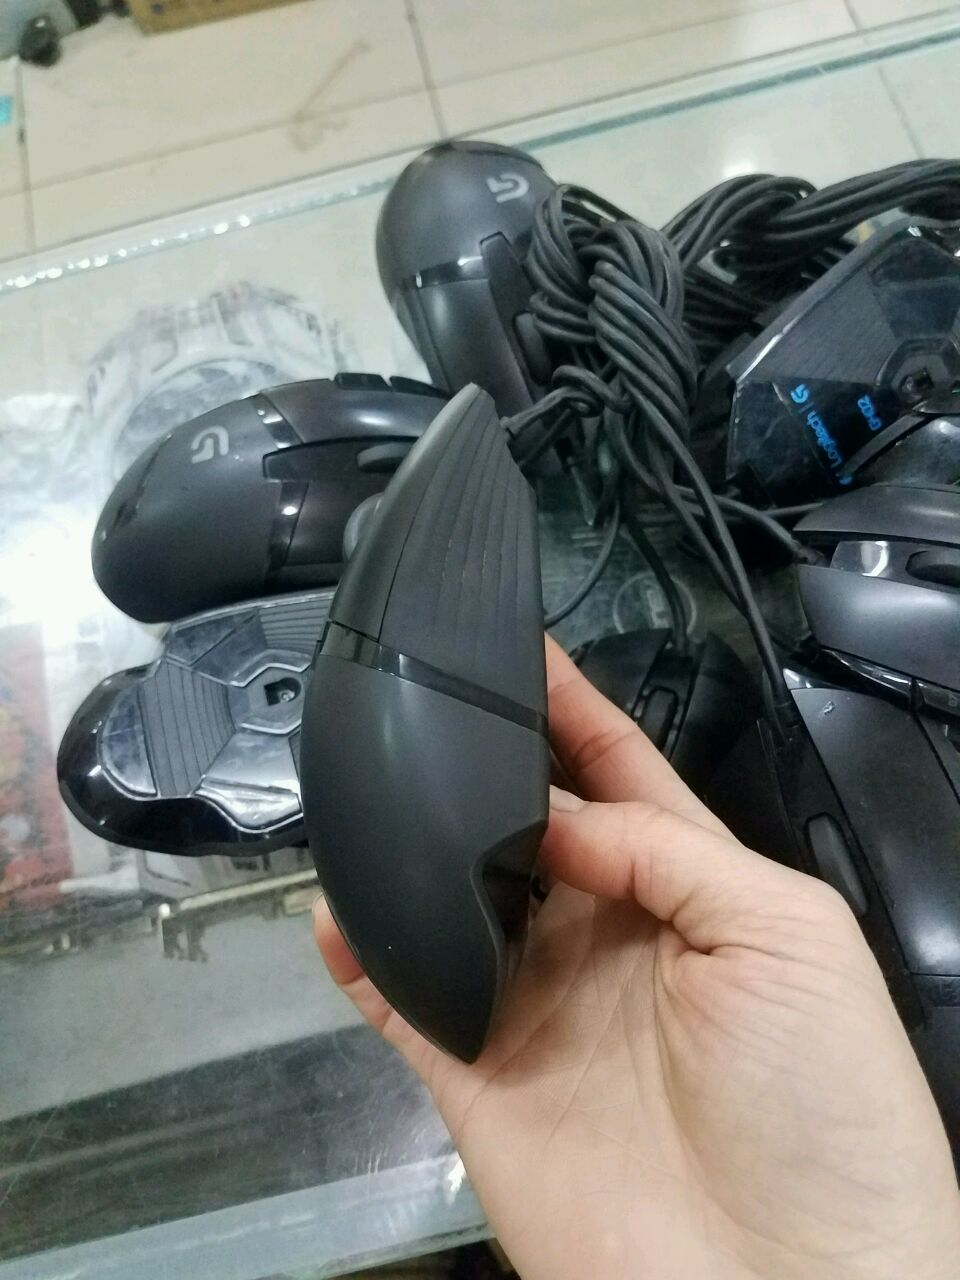 8355f97aac3 Logitech G402 crazy price a price to buy more goods shelves no time to see  · Zoom · lightbox moreview · lightbox moreview · lightbox moreview ...